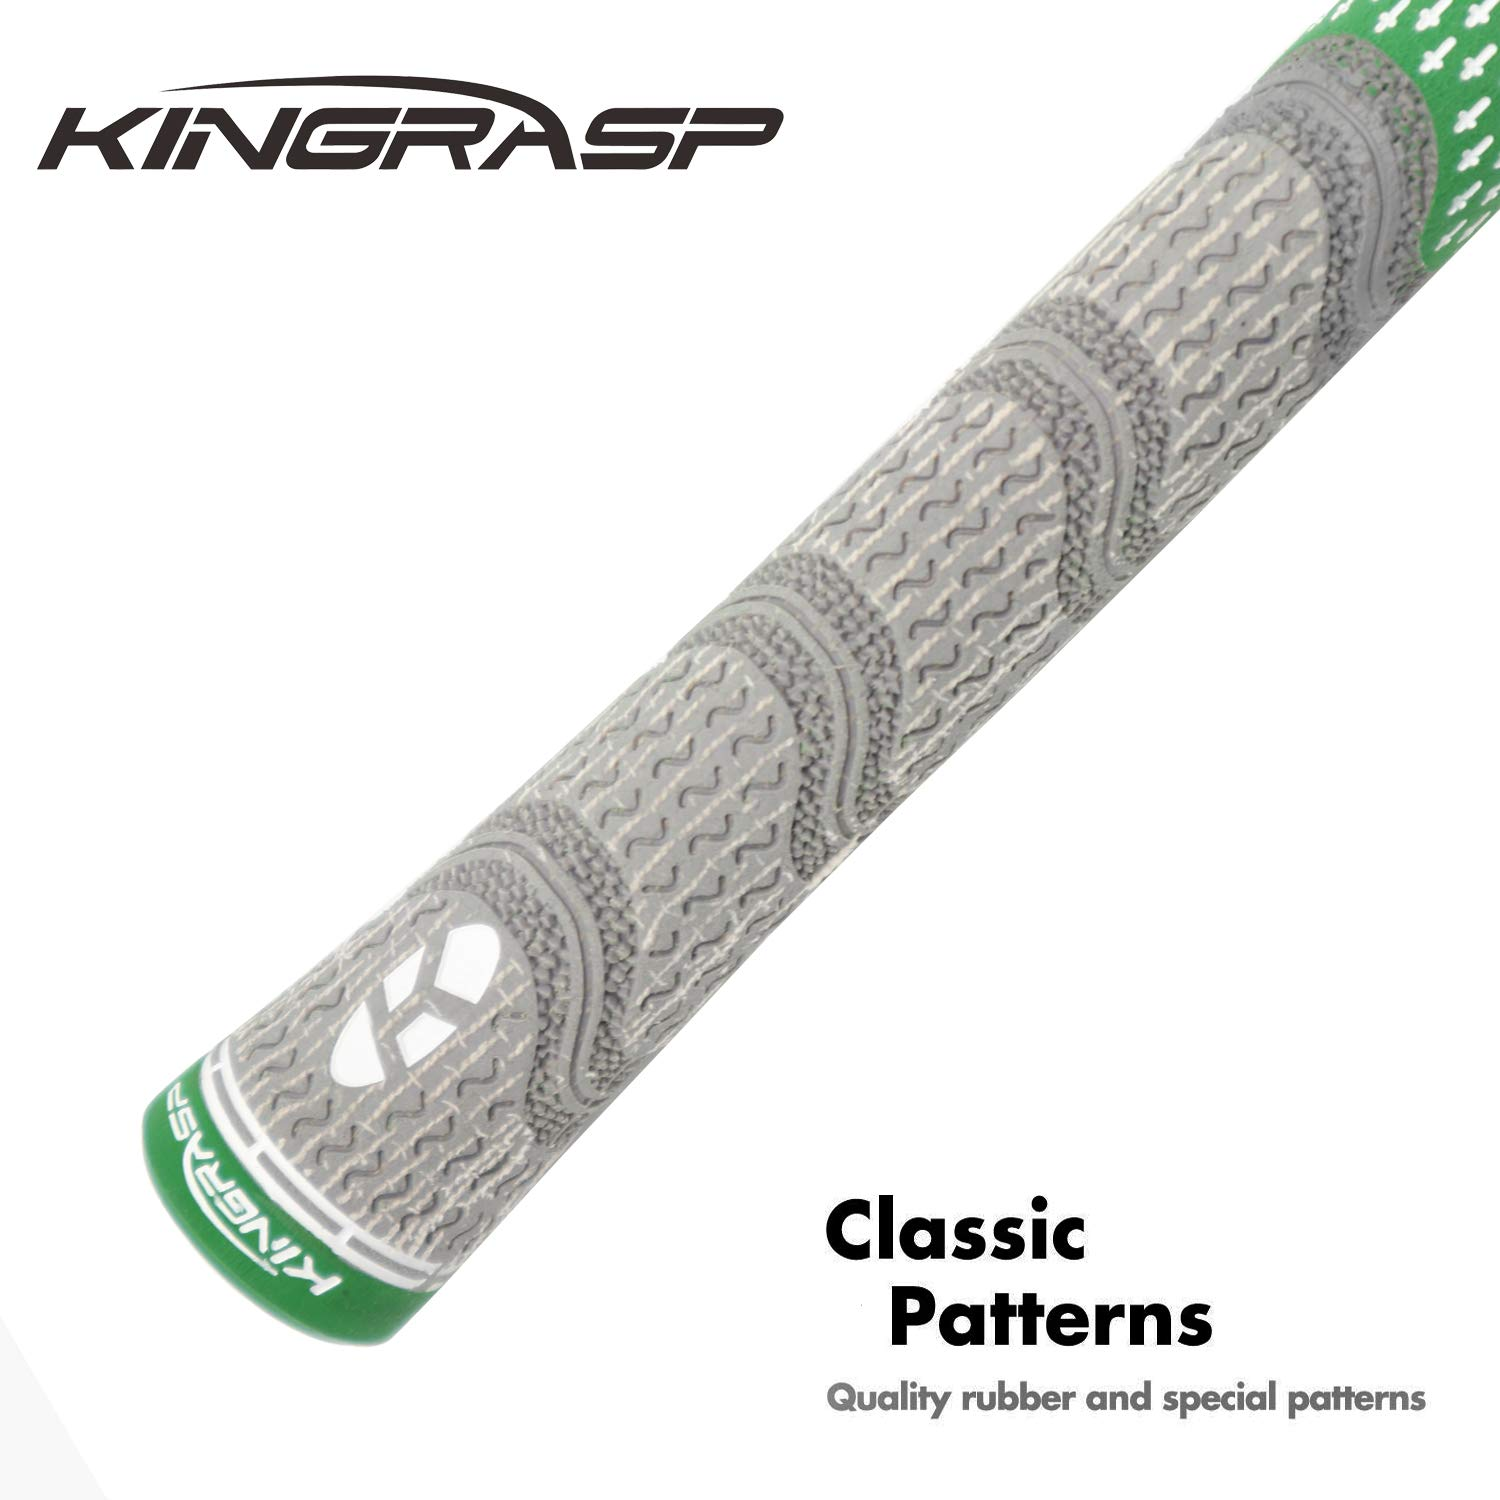 KINGRASP Multi Compound Golf Grips Set of 13 Golf Grip Standard midsize Size - All Weather Rubber Golf Club Grips Ideal for Clubs Wedges Drivers Irons Hybrids (Gray/Green, Standard) by KINGRASP (Image #3)